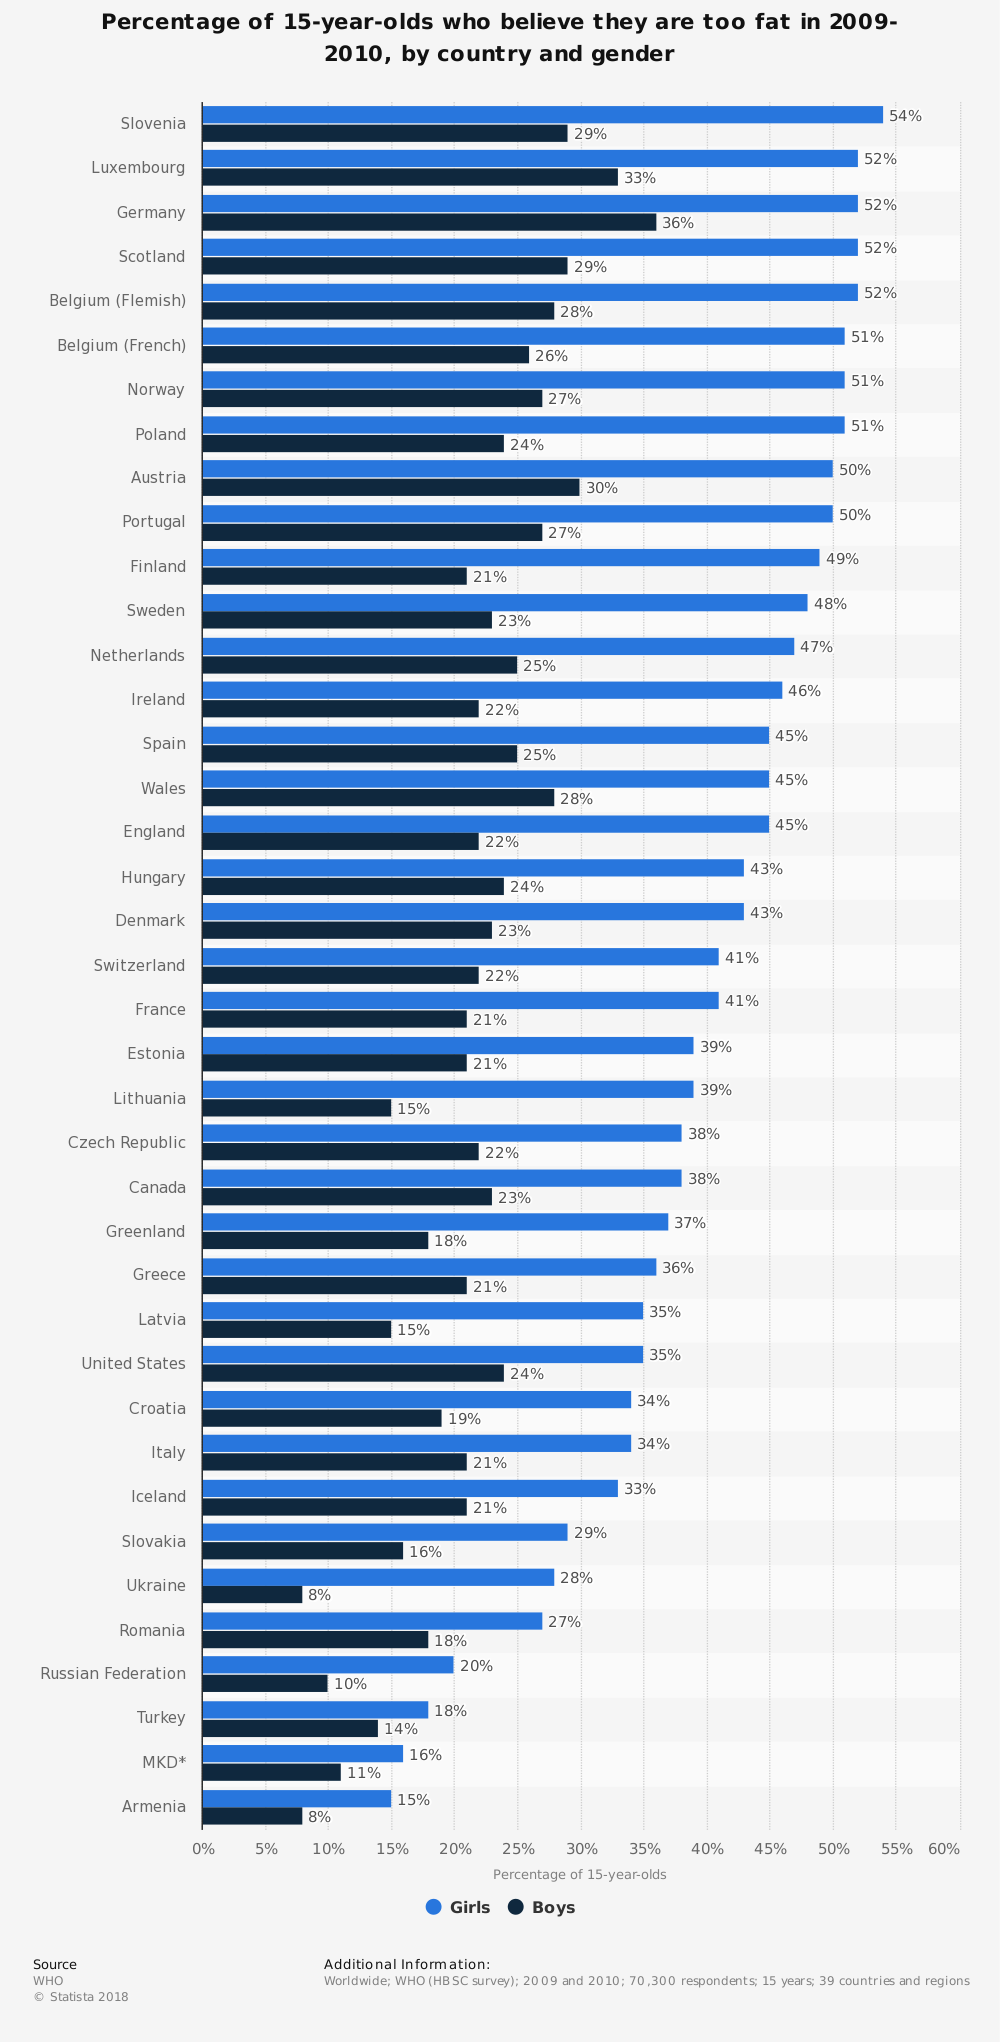 Statistic: Percentage of 15-year-olds who believe they are too fat in 2009-2010, by country and gender | Statista